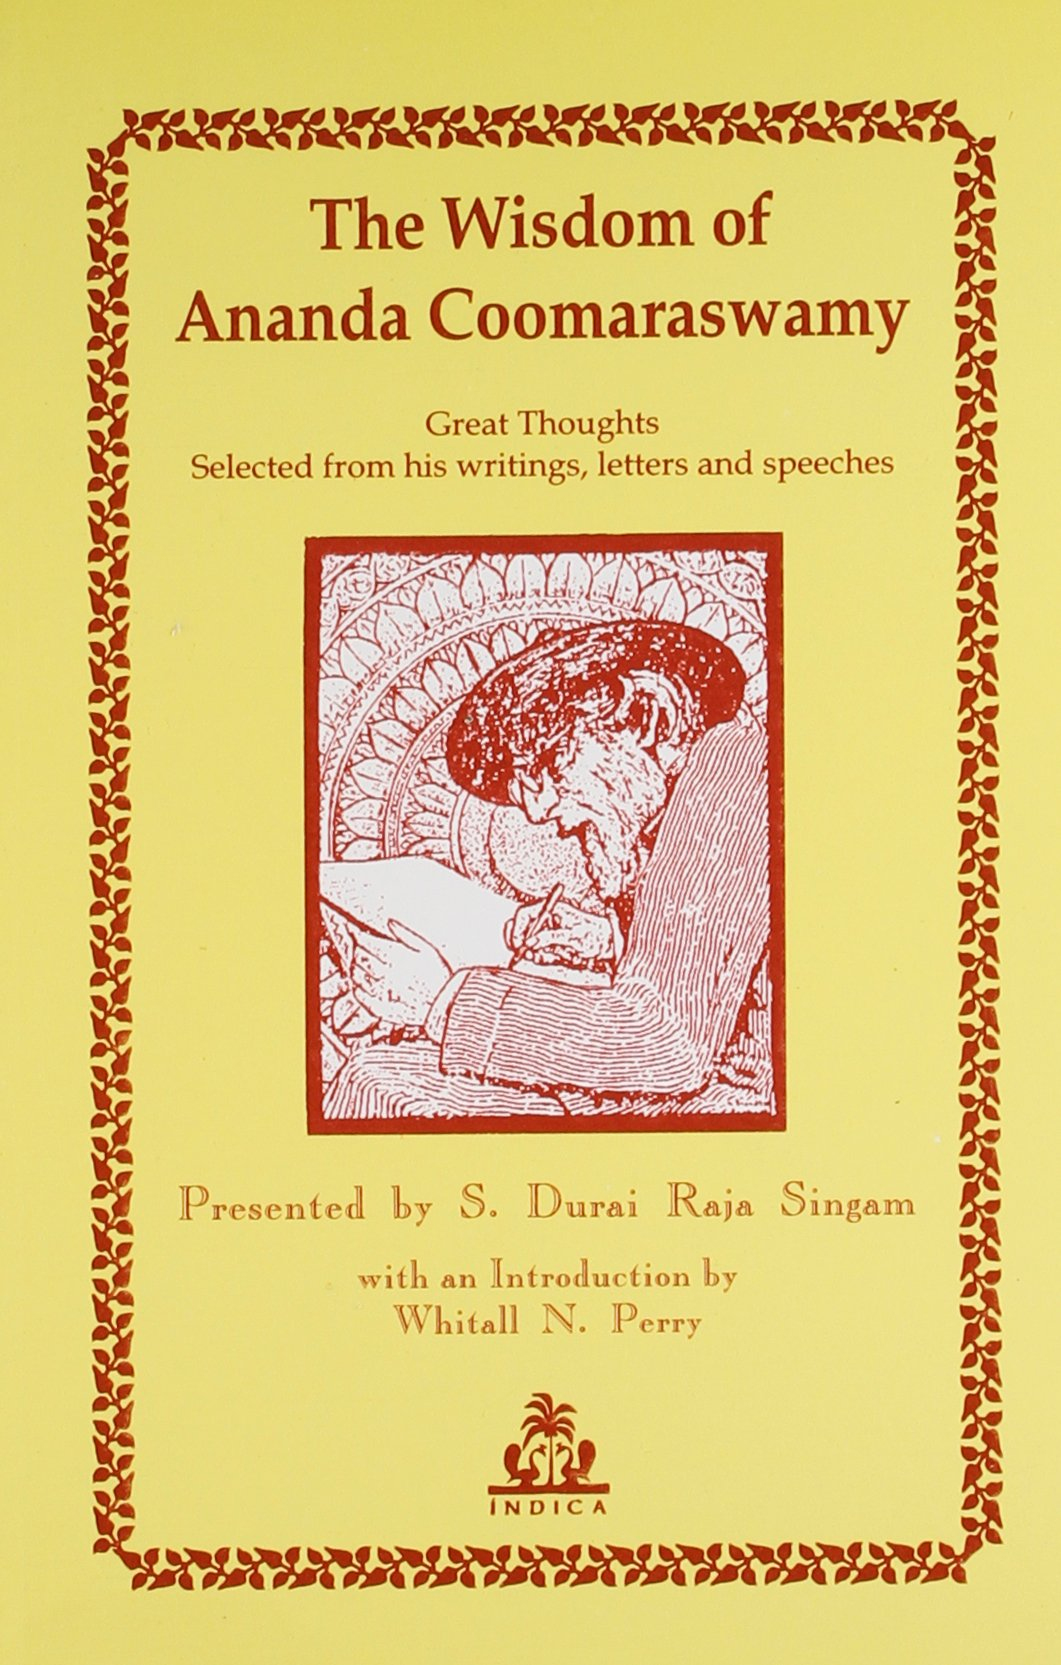 The wisdom of anada coomaraswamy s durai raja sigam 9788186569214 the wisdom of anada coomaraswamy s durai raja sigam 9788186569214 amazon books altavistaventures Images